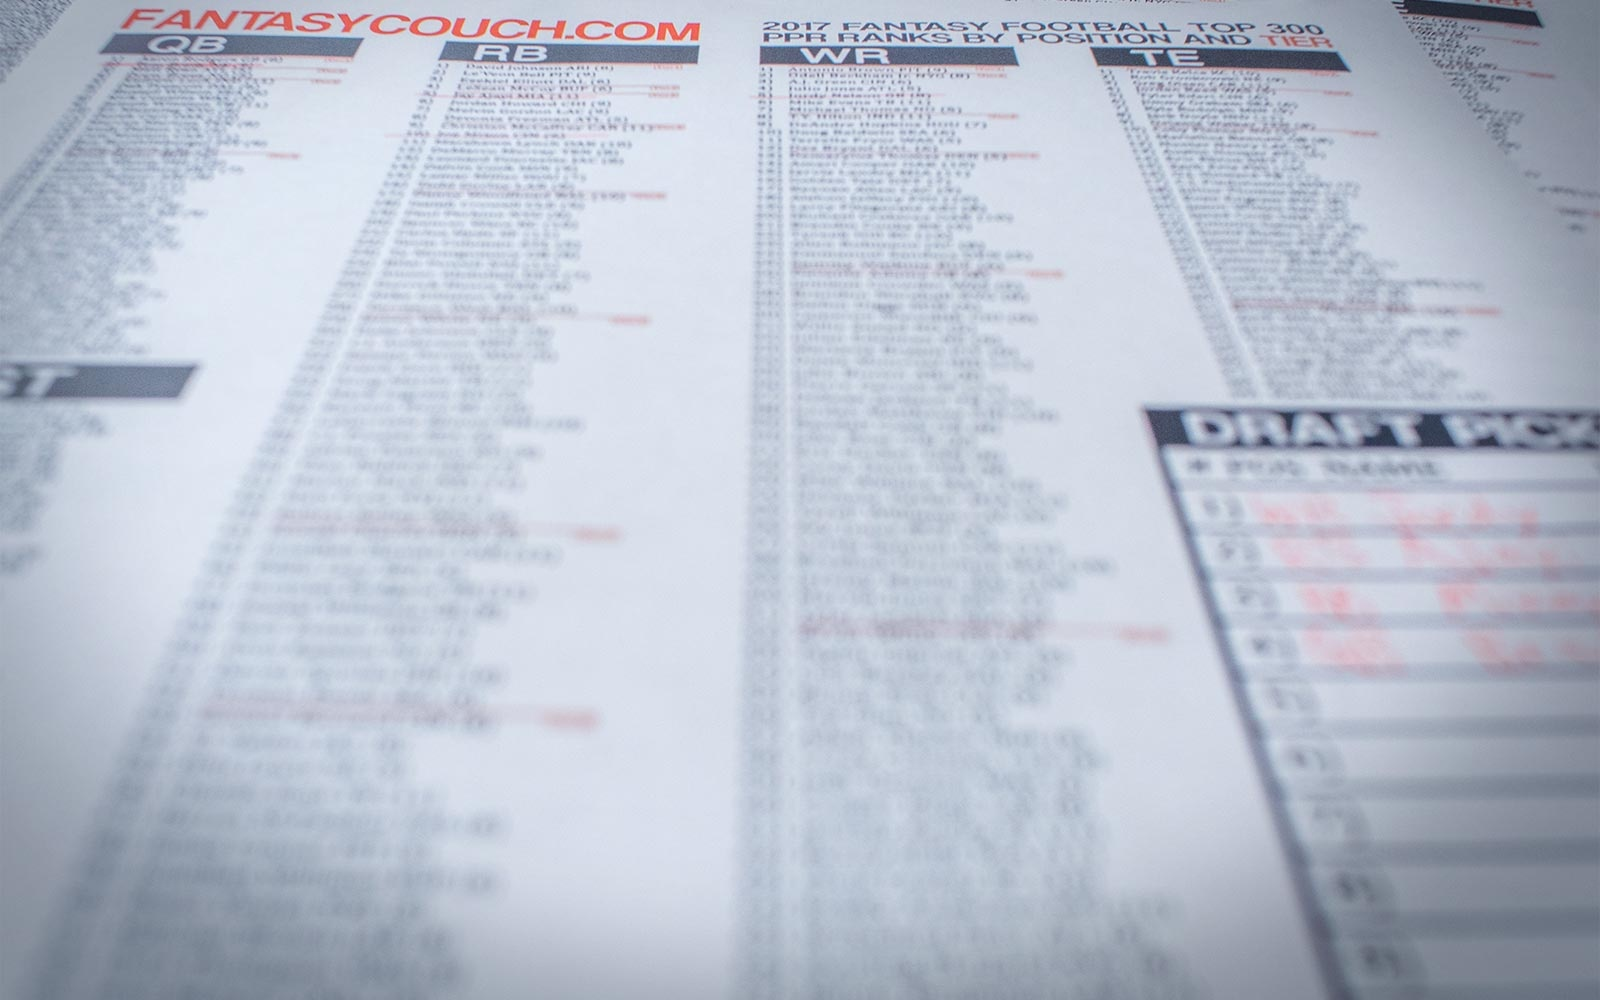 Cheat Sheet Archives - Fantasy Couch - Free Fantasy Football Cheat Sheets Printable